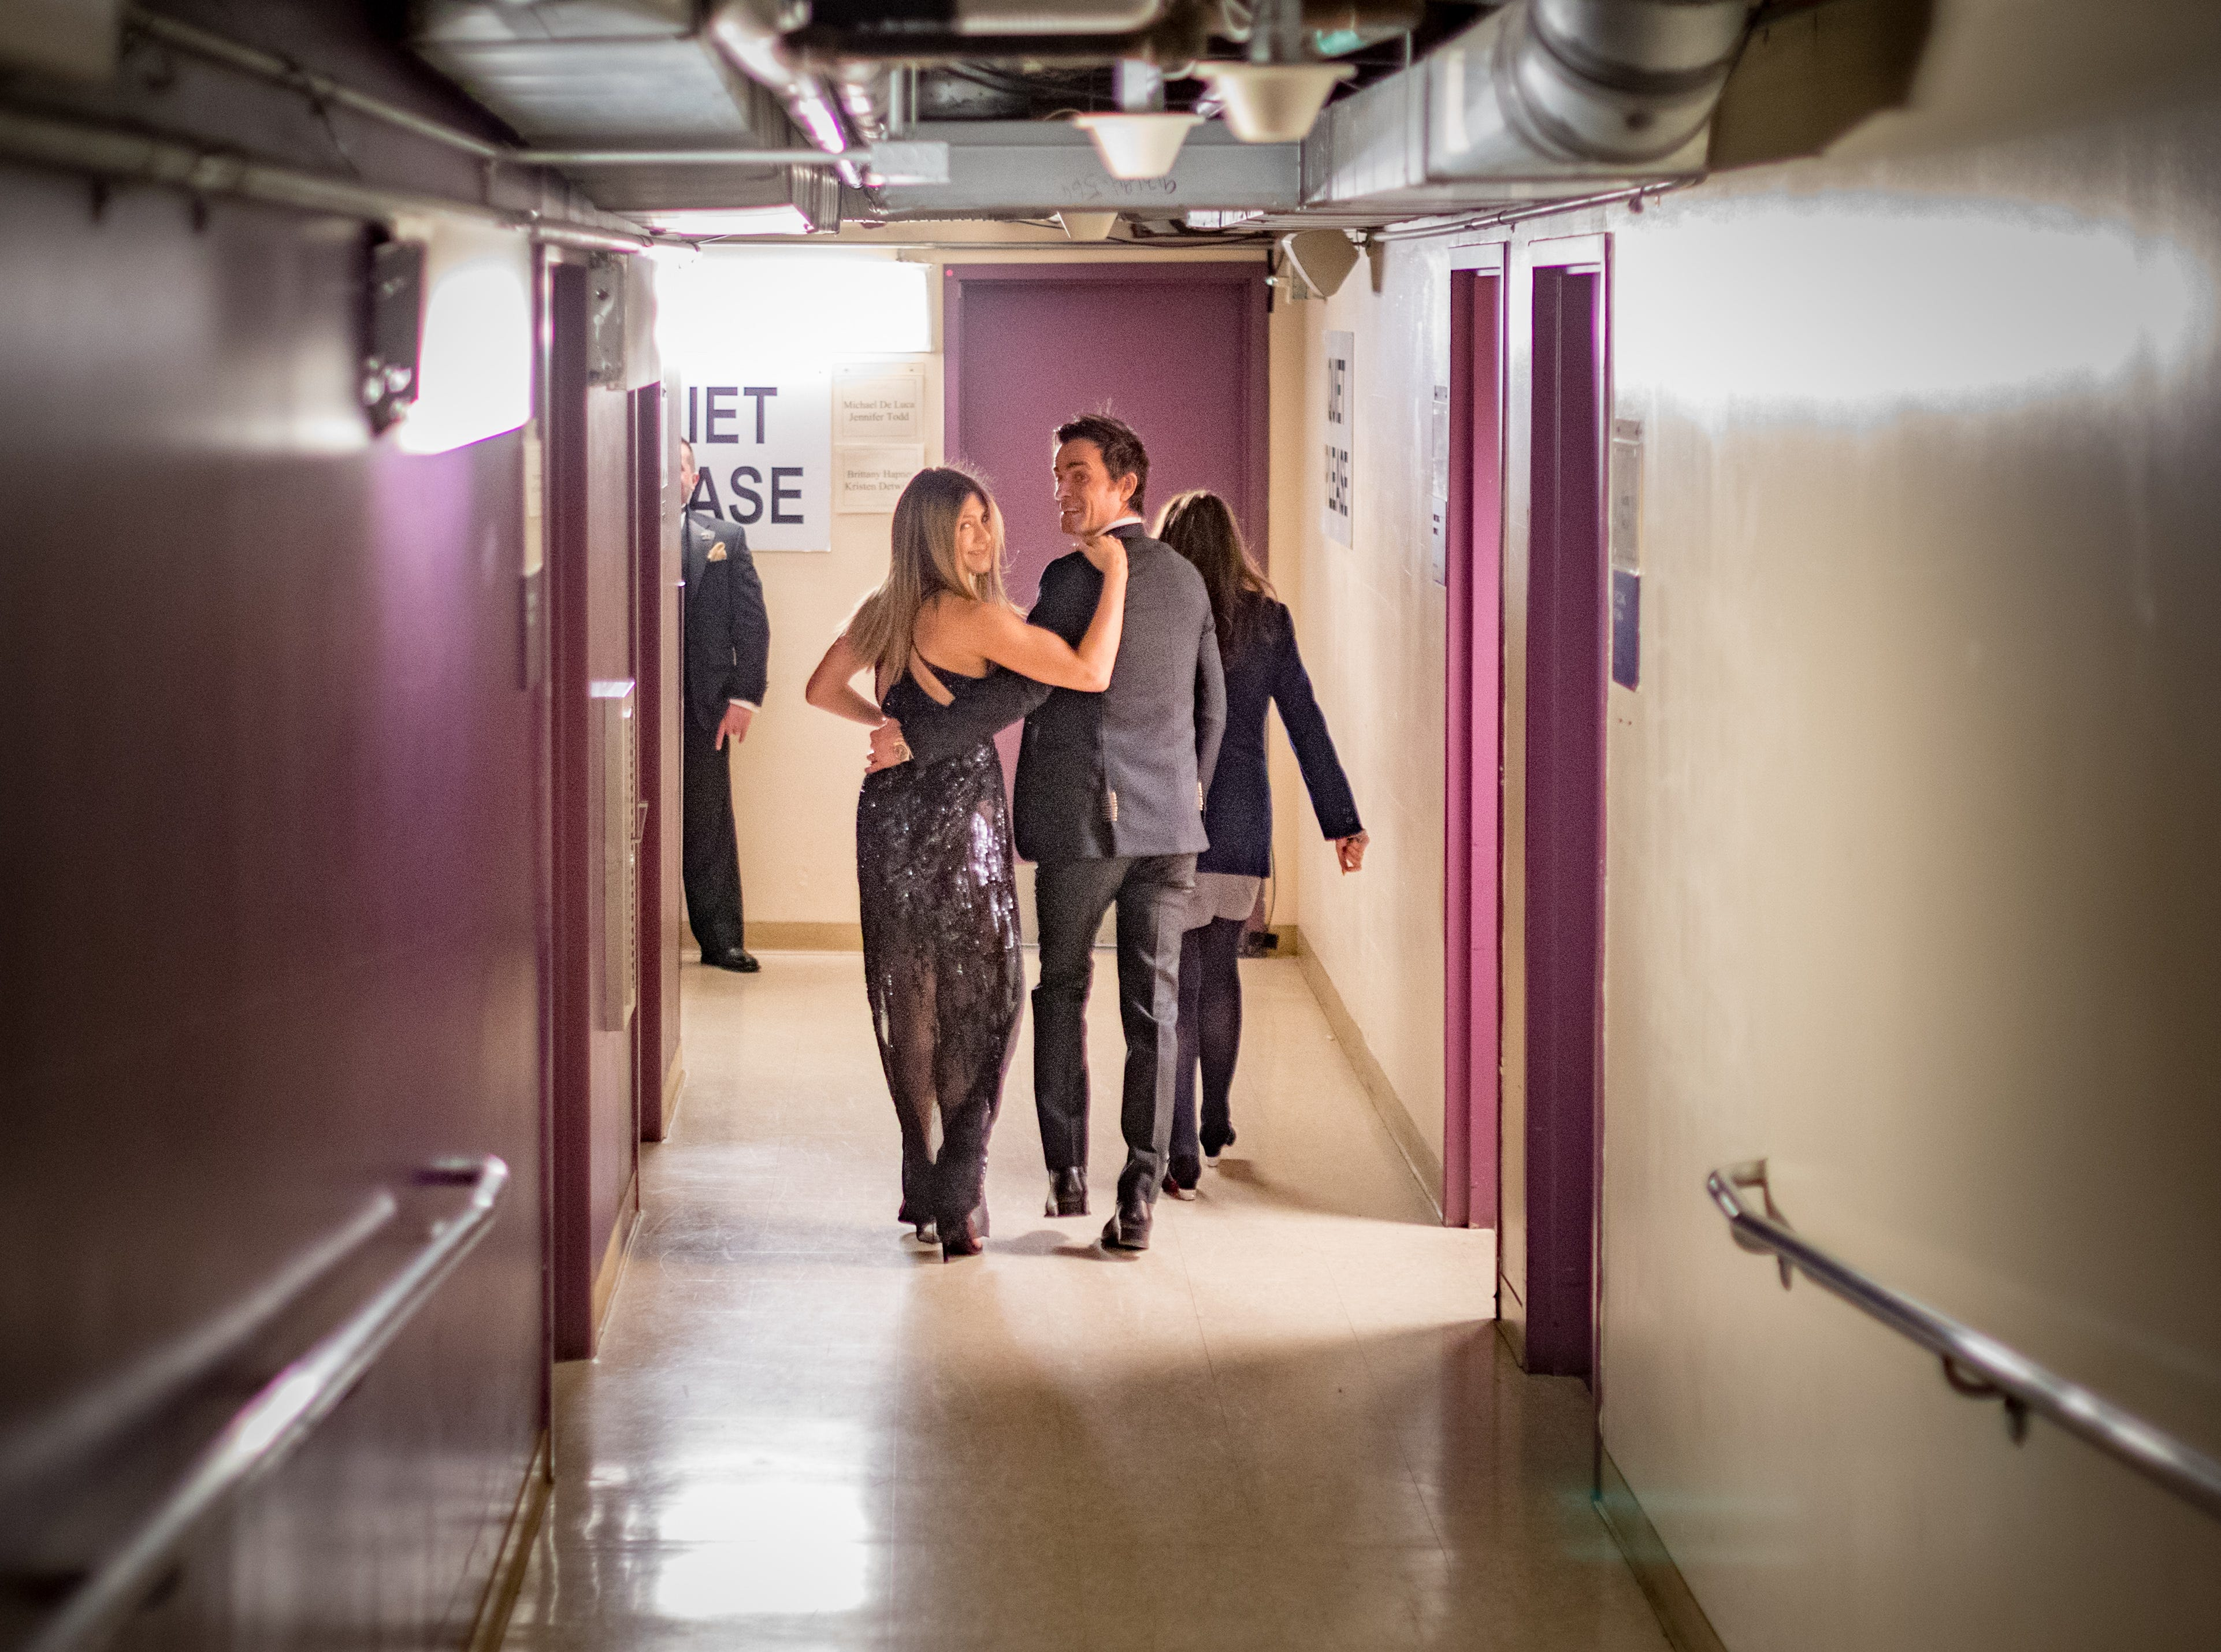 After coming offstage at the Oscars, Aniston  was spotted canoodling in the hall with her husband.